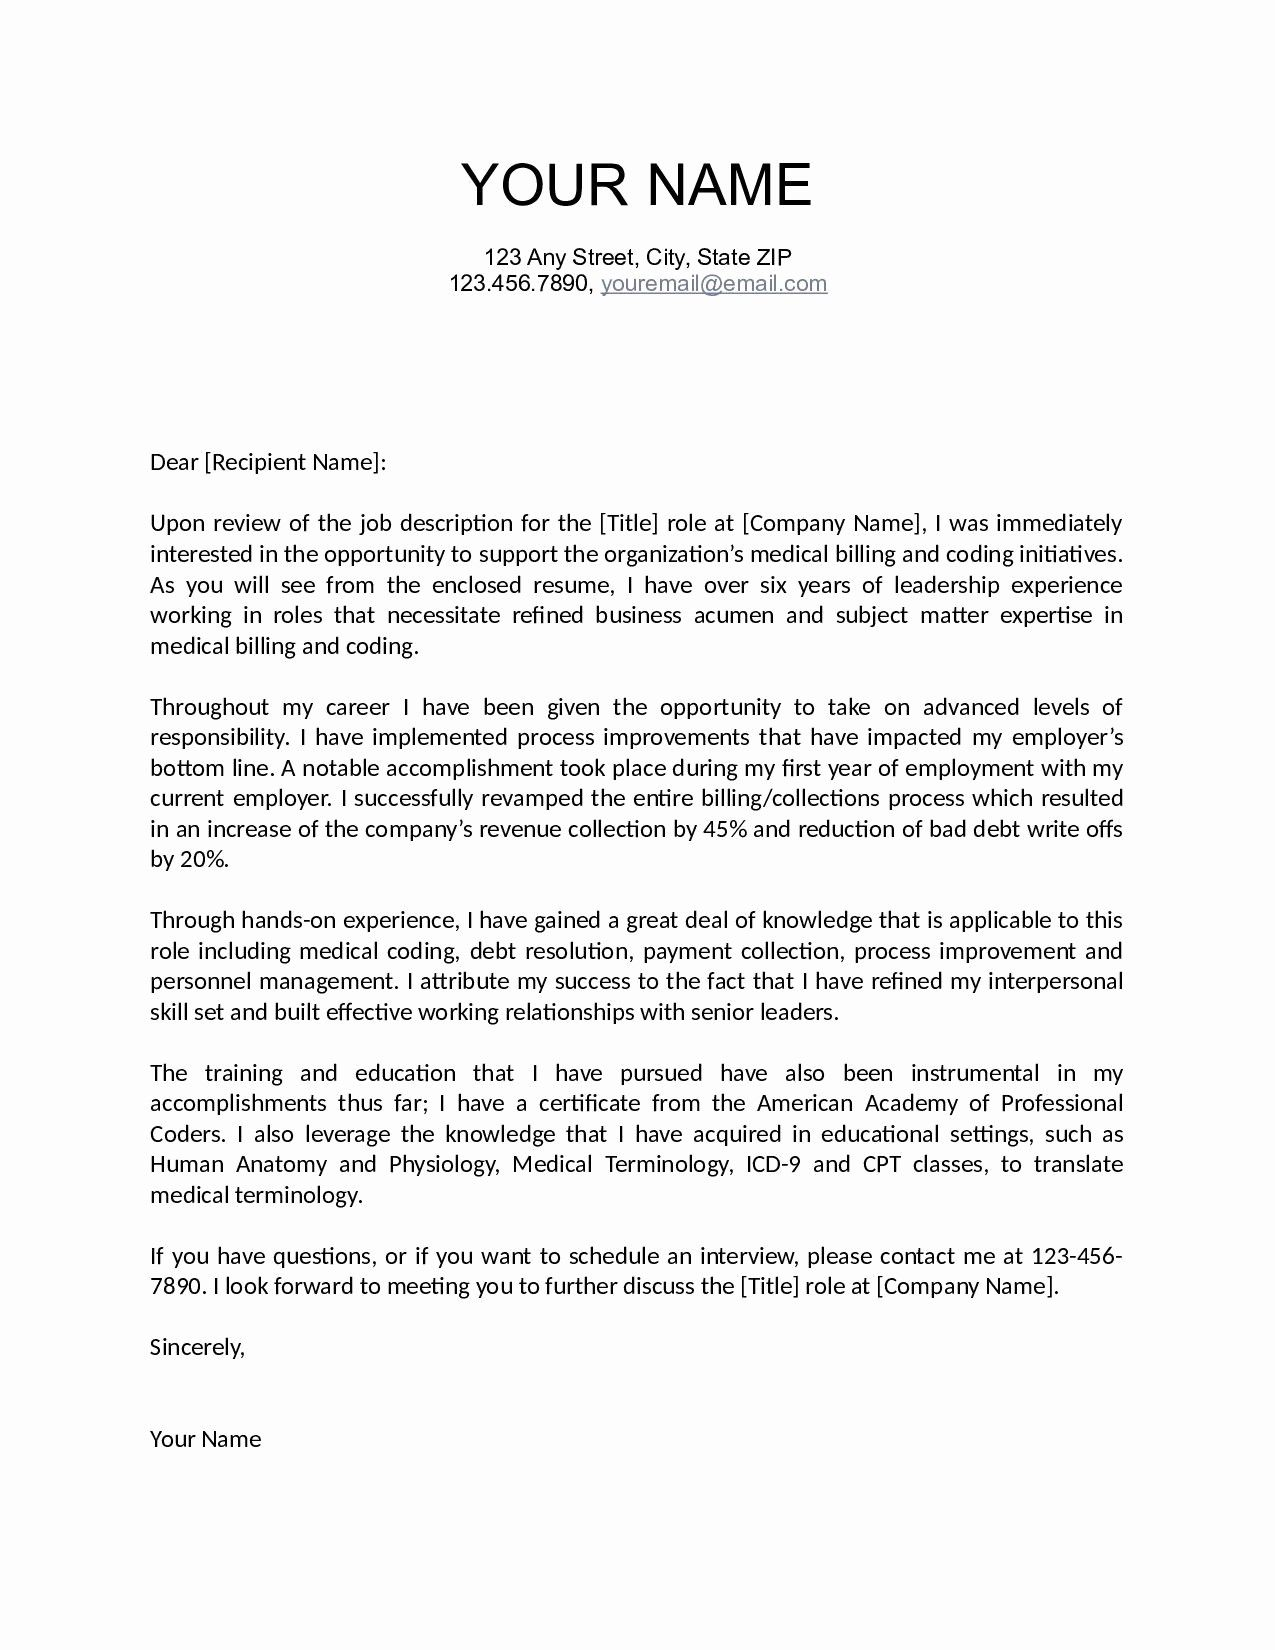 Cover Letter Template Wikihow Job Cover Letter Cover Letter For